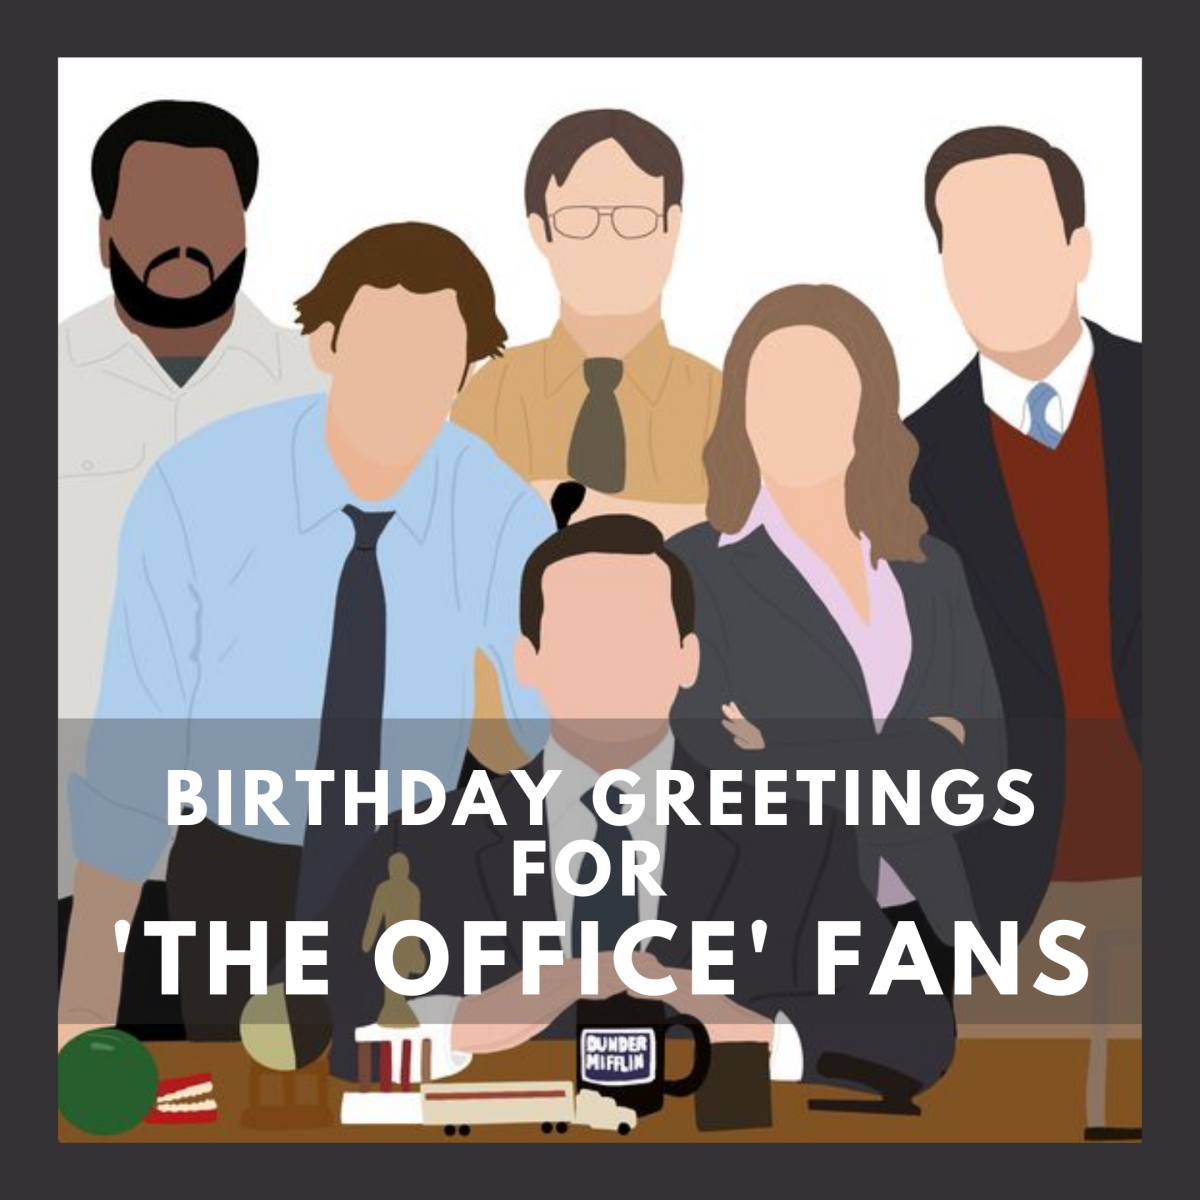 25+ Birthday Wishes for 'The Office' Fans